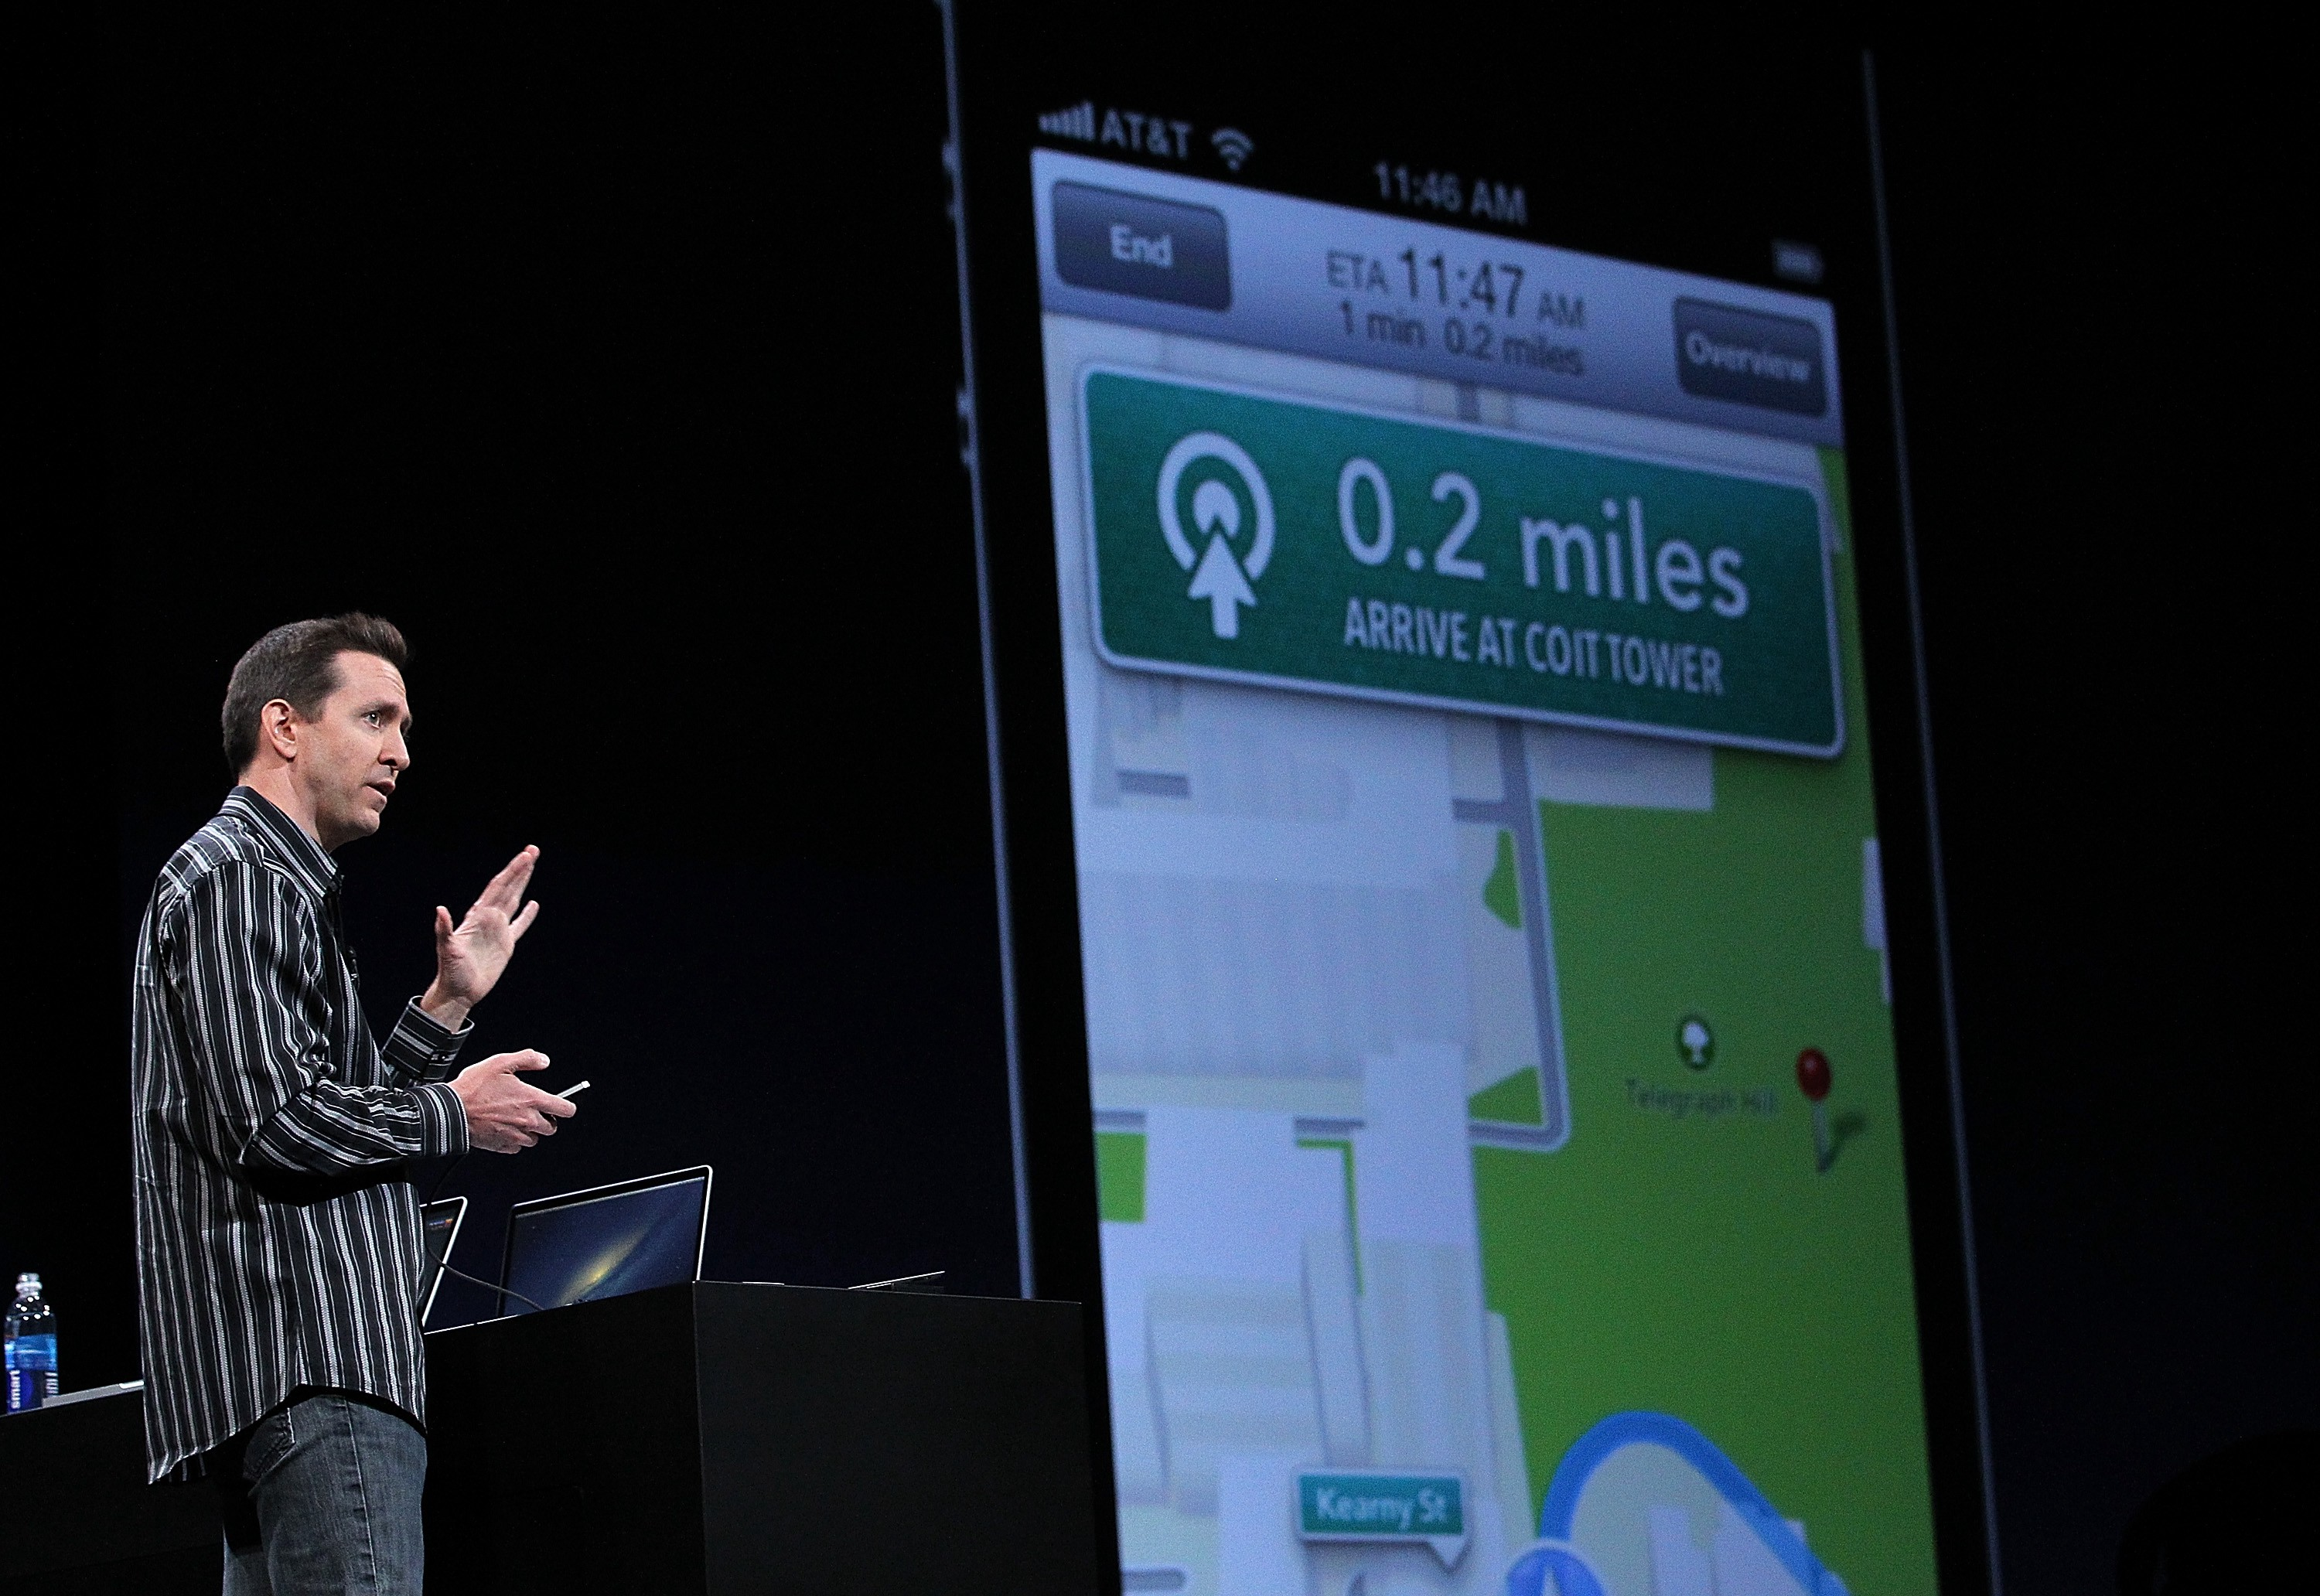 Scott Forstall unveiling Apple Maps during WWDC.